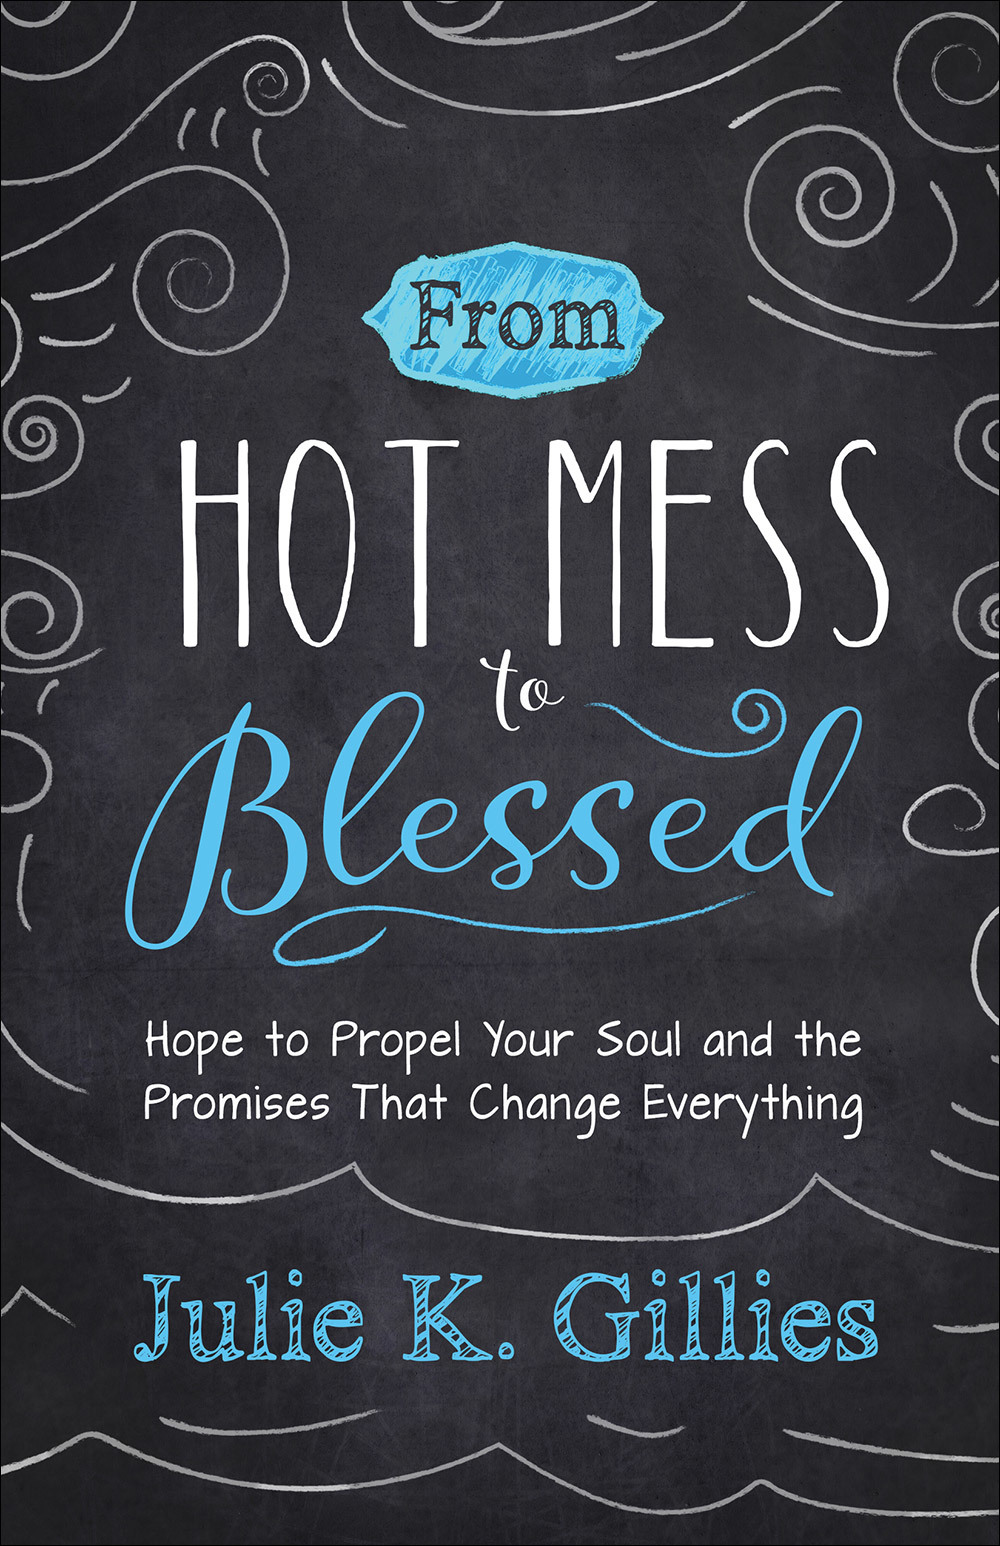 From Hot Mess to Blessed Hope to Propel Your Soul and the Promises That Change Everything